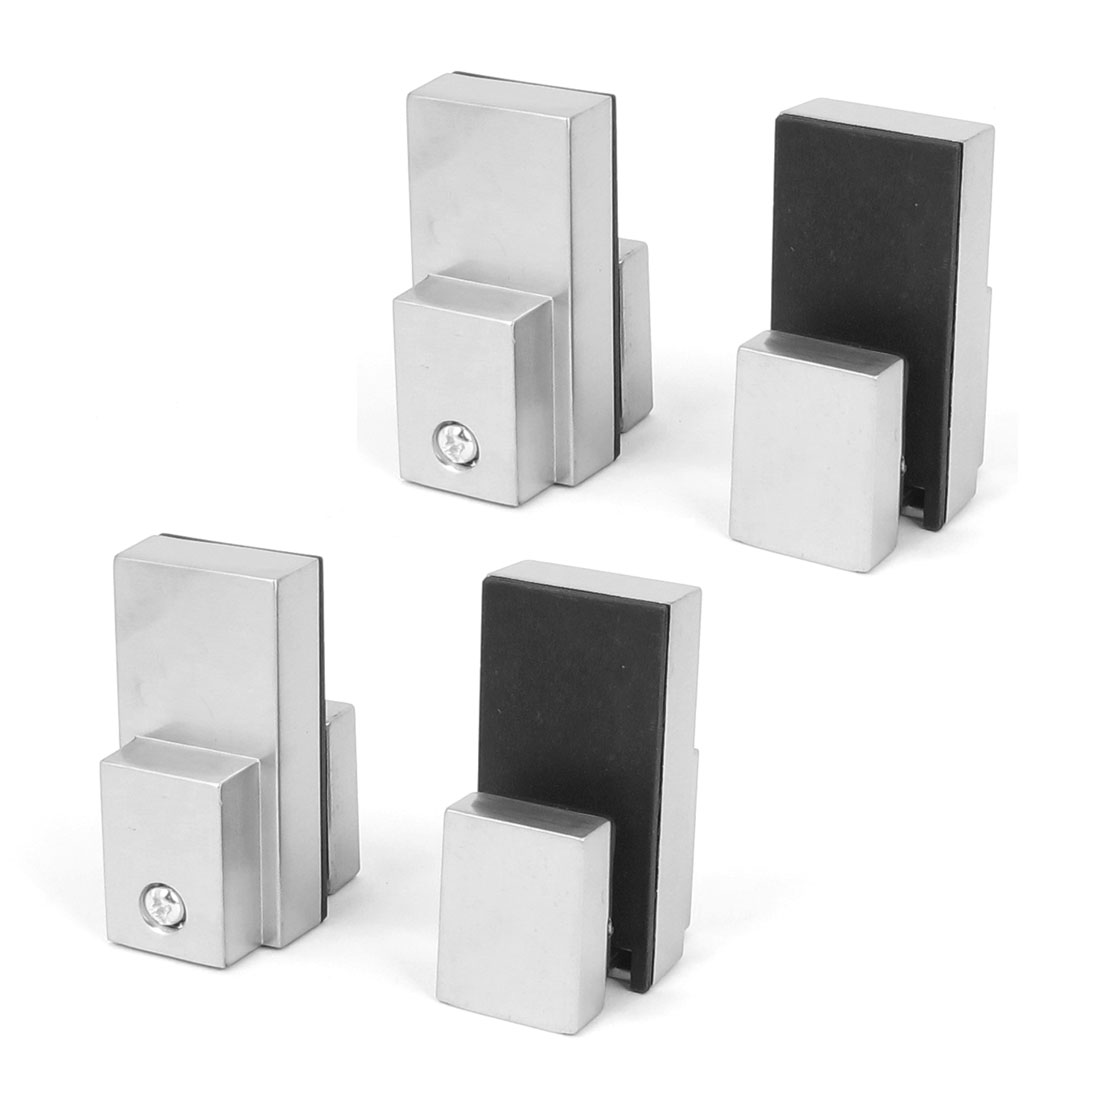 Adjustable 3mm-14mm Thick Glass Shelf Metal Clip Clamp Support Bracket 4pcs